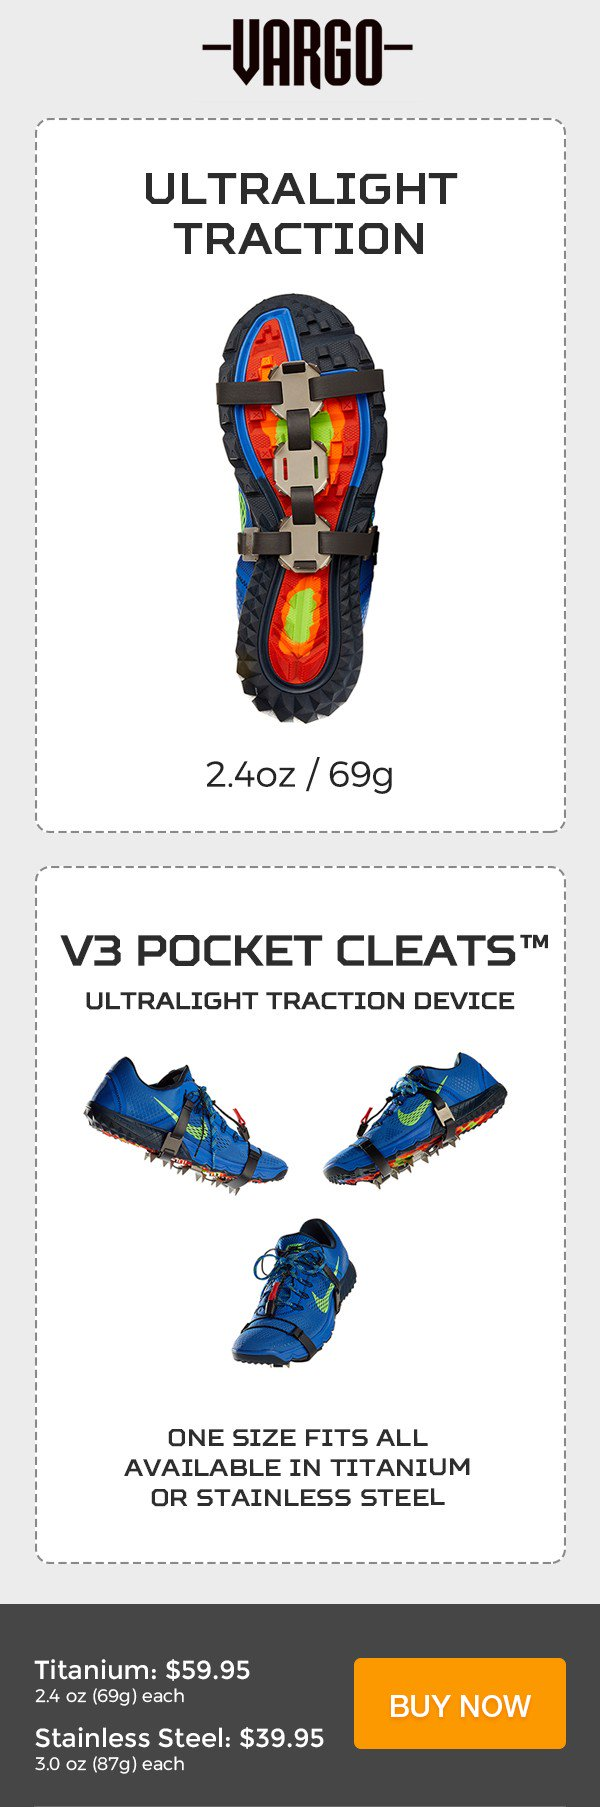 e338ace96a2 V3 Pocket Cleats™ available now in titanium or stainless steel. Trail  traction has never been so effectively lightweight!…  https   t.co cufl8zruYg